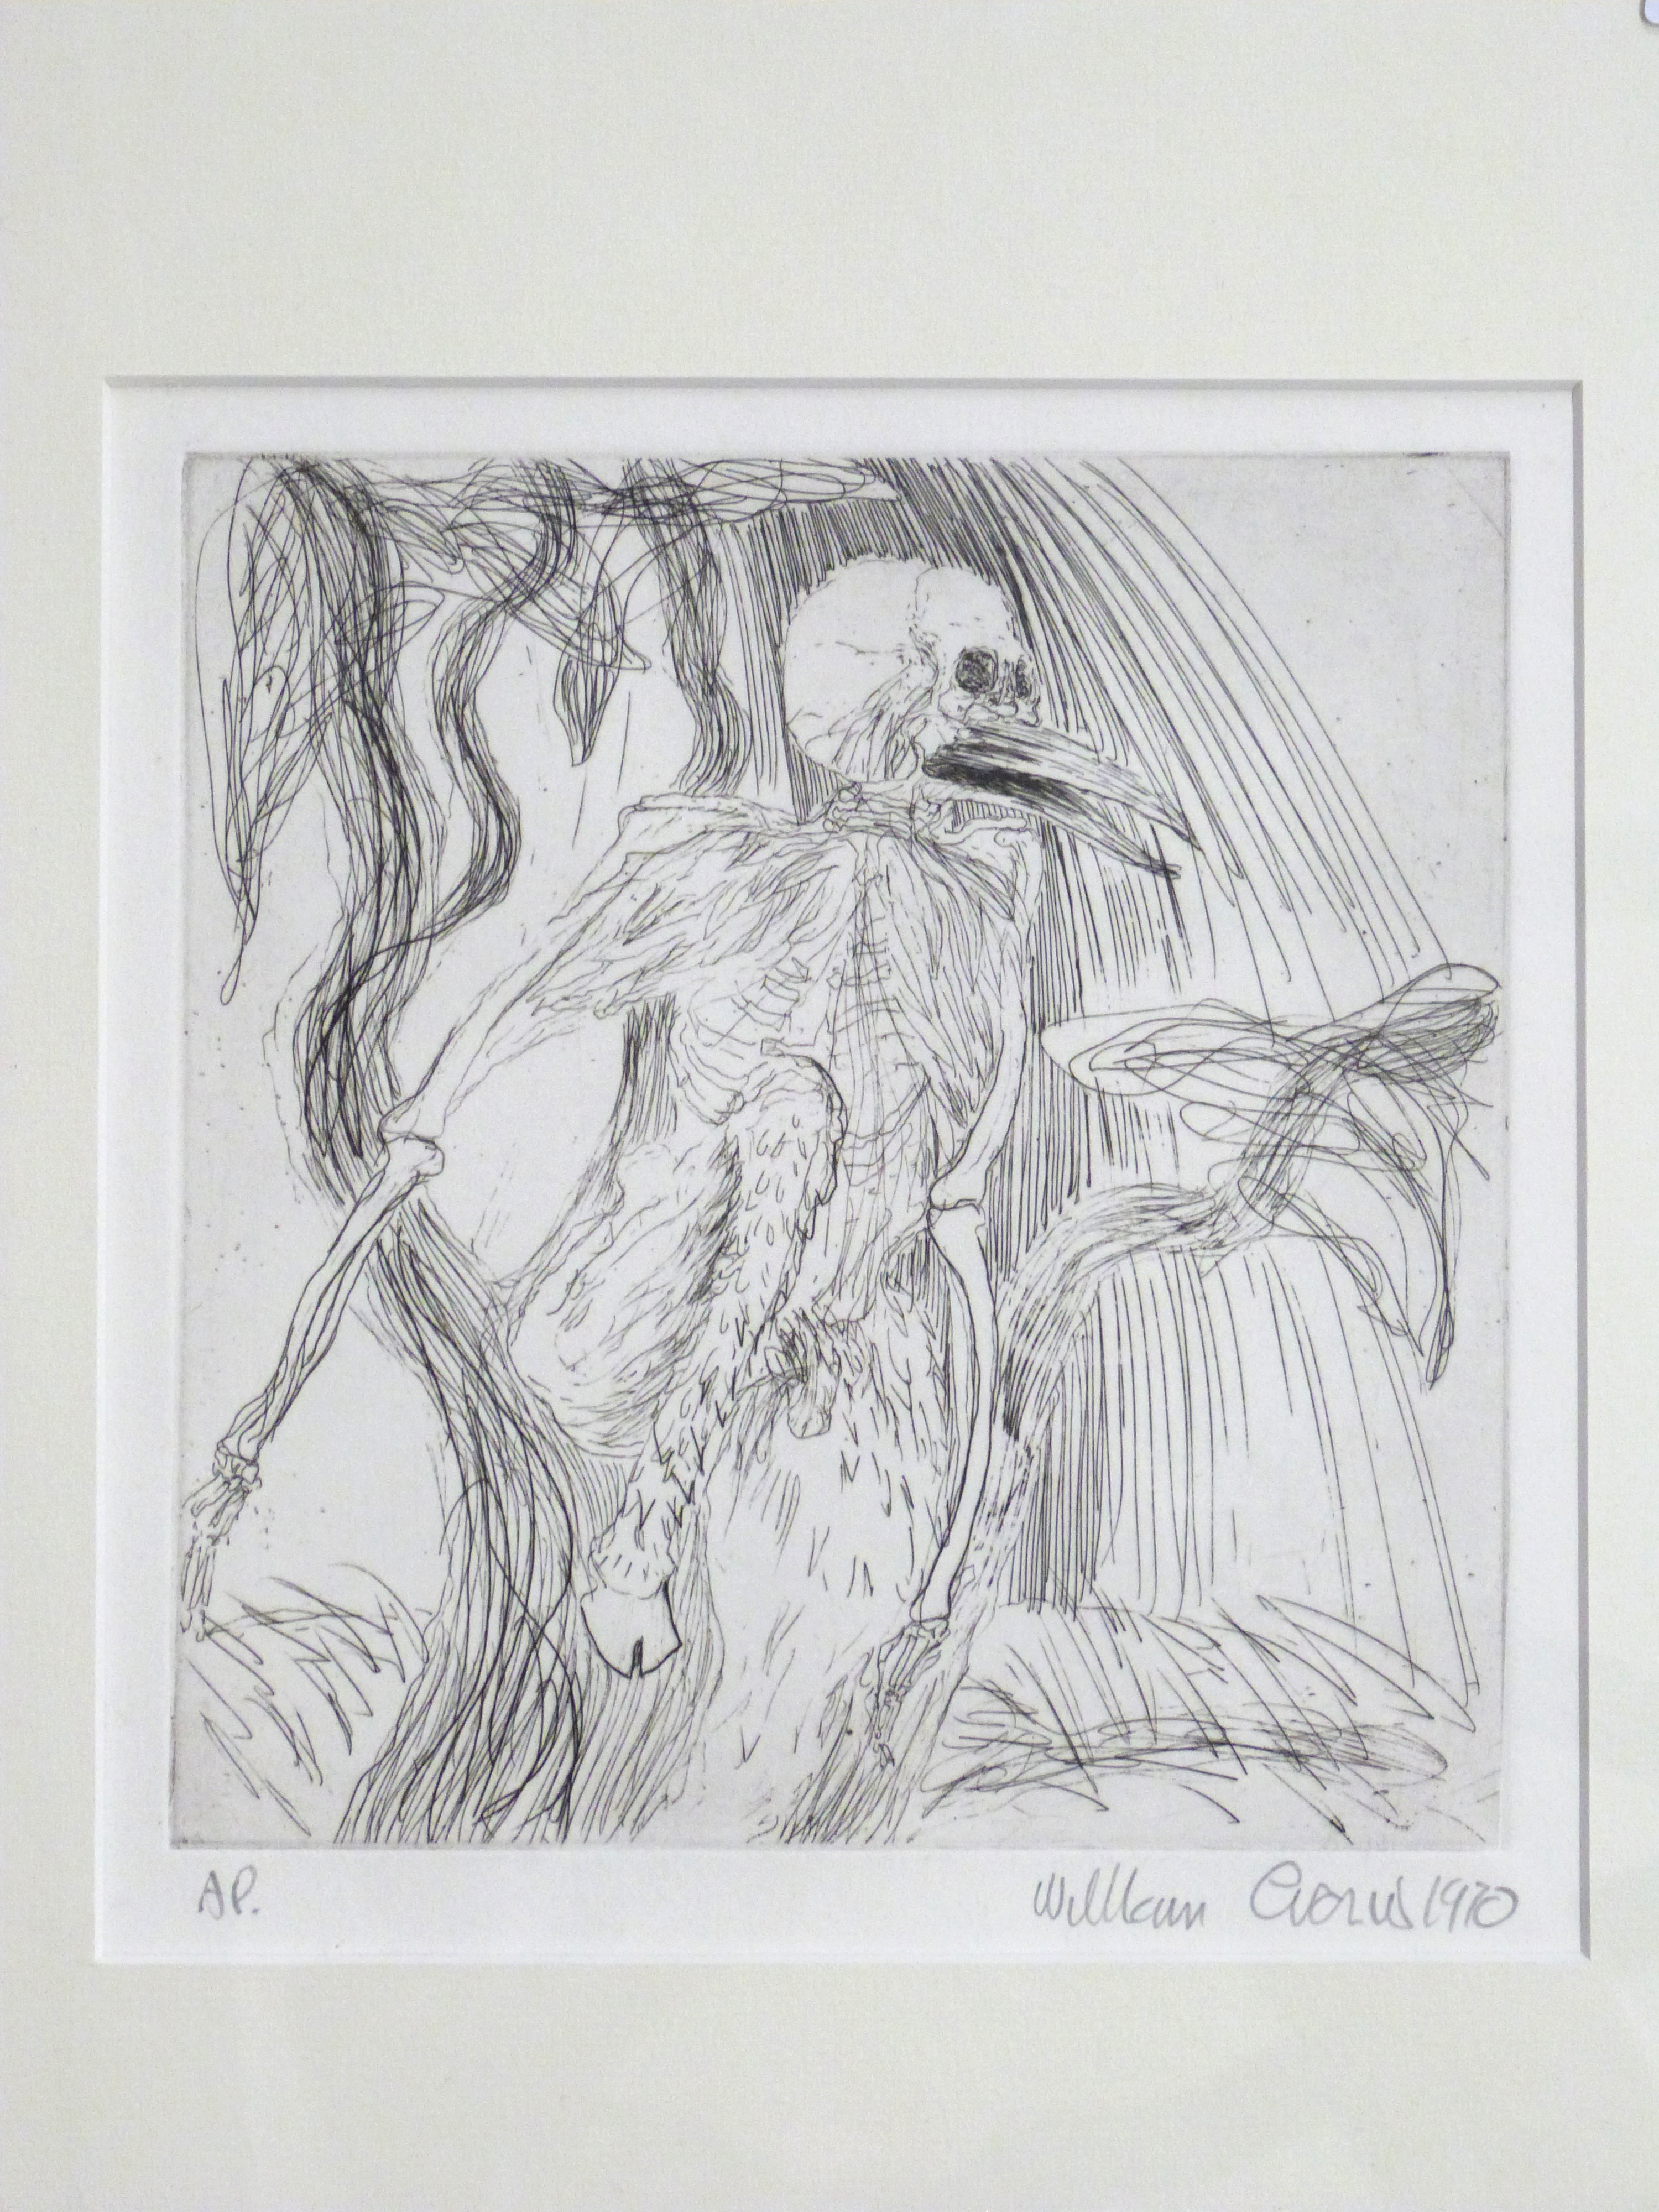 An abstract figure, mid-late 20th century, , Pencil, pen on paper, indistinctly signed, 8 x 7ins. - Image 2 of 2